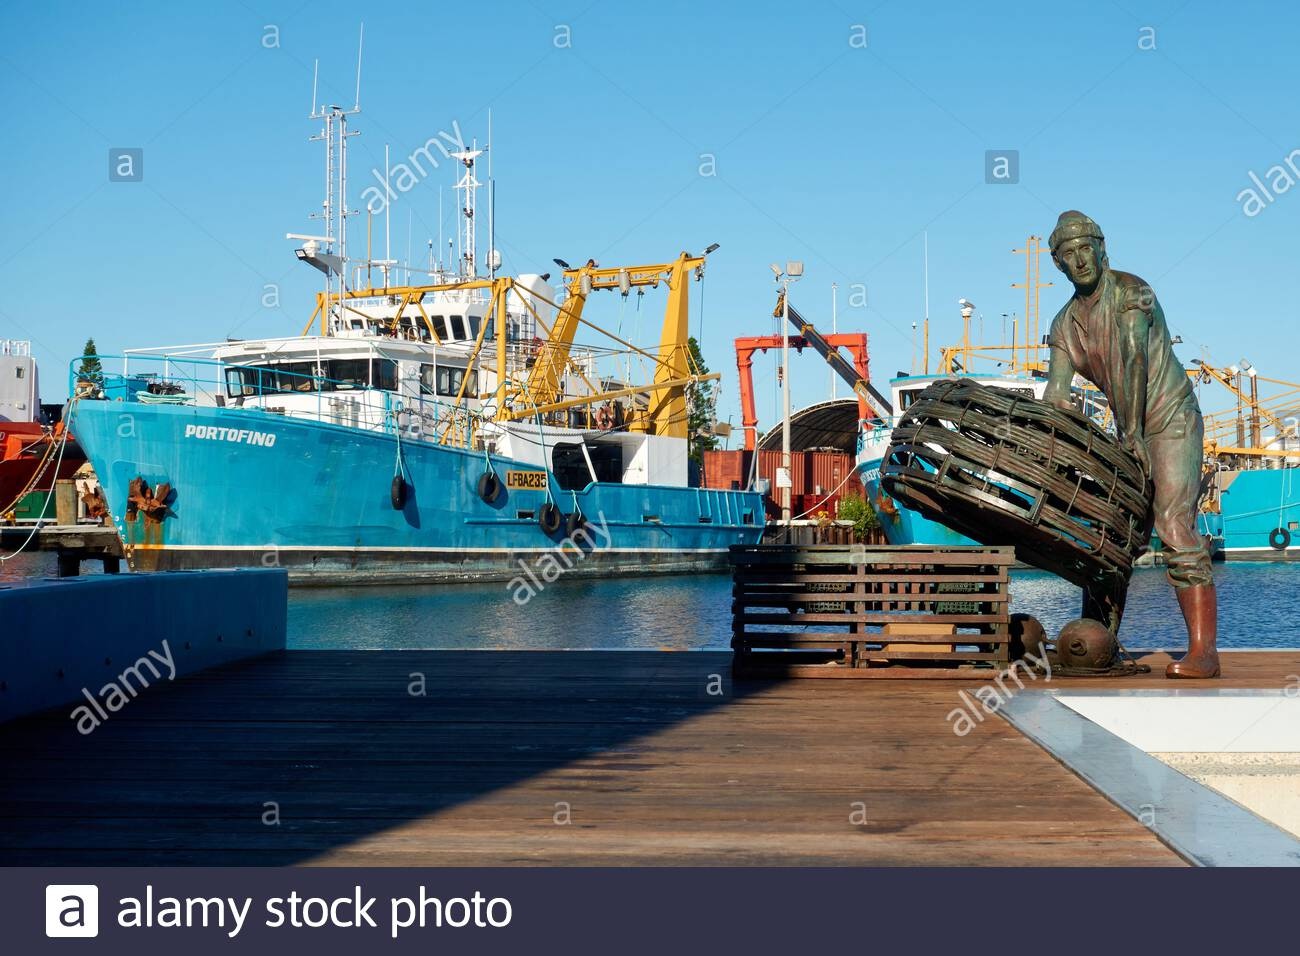 a-bronze-sculpture-by-greg-james-of-a-fisherman-with-craypots-for-lobster-fishing-and-the-portofino-fishing-boat-at-fremantle-fishing-boat-harbour-wa-2F8X55X.jpg